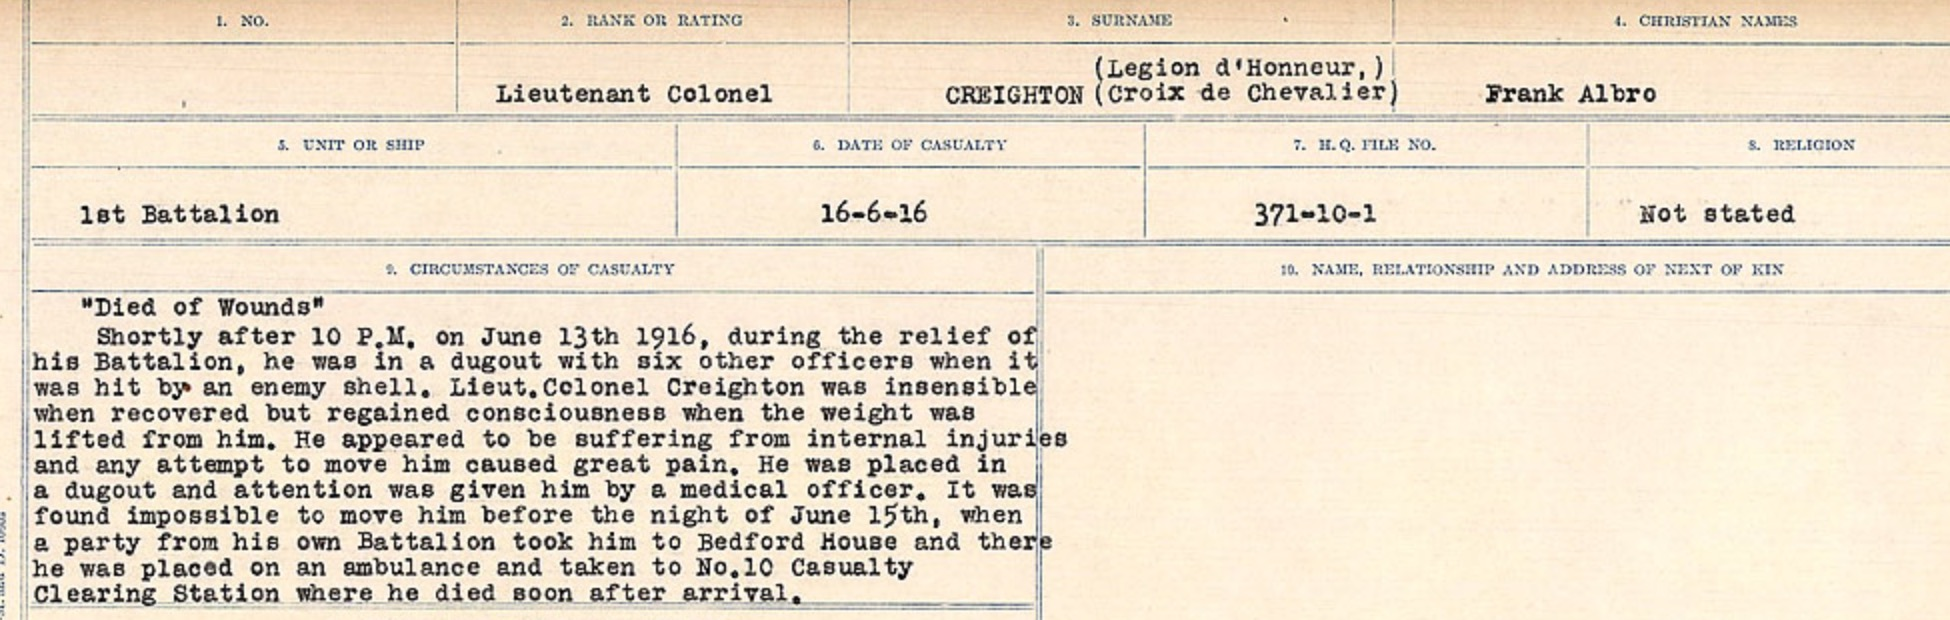 Circumstances of death registers– Source: Library and Archives Canada. CIRCUMSTANCES OF DEATH REGISTERS, FIRST WORLD WAR Surnames: CRABB TO CROSSLAND Microform Sequence 24; Volume Number 31829_B016733. Reference RG150, 1992-93/314, 168. Page 453 of 788.